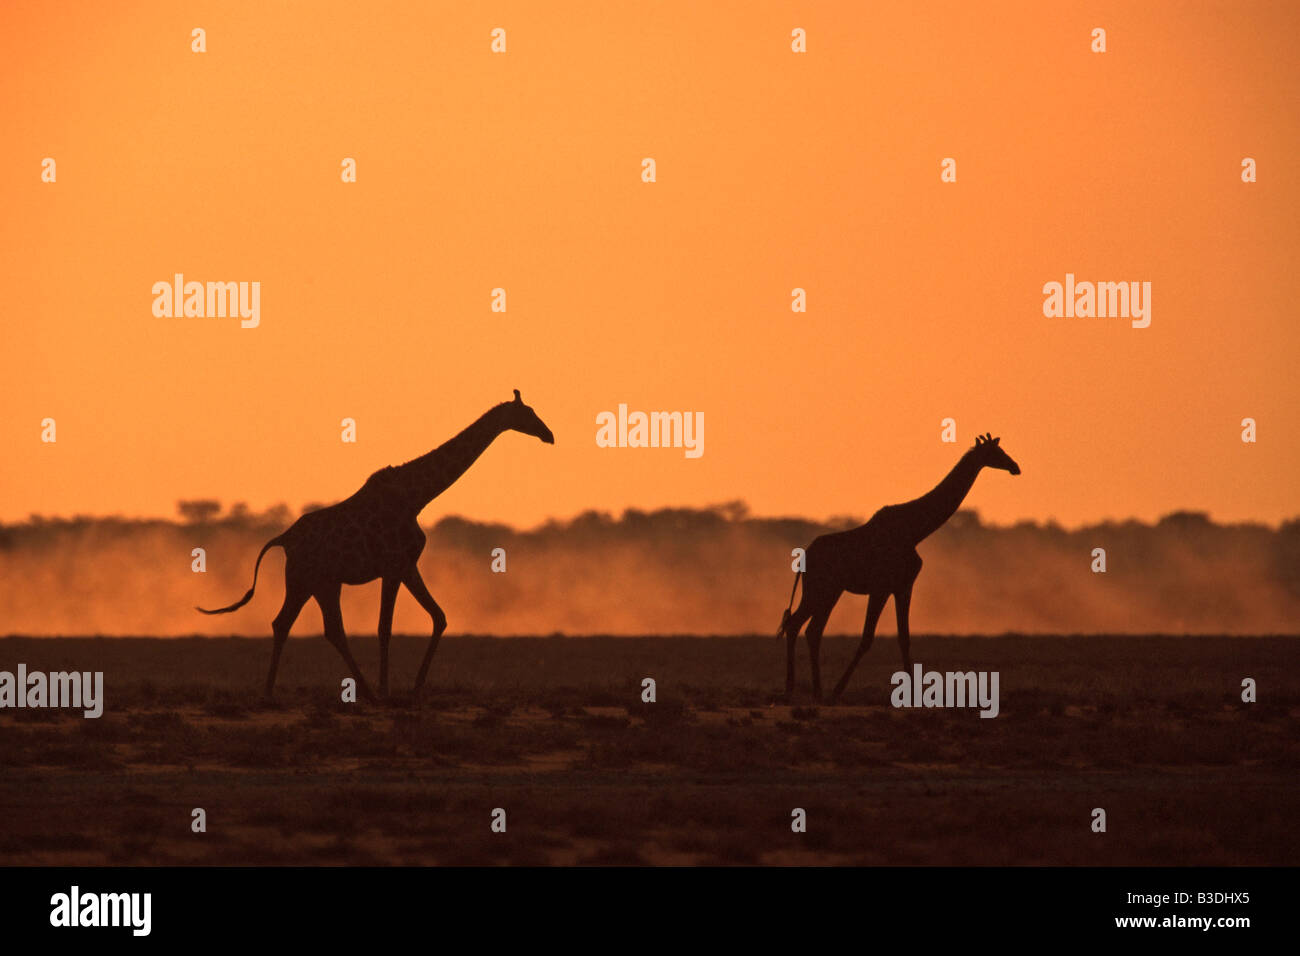 Cape Giraffe at Sunset Etosha National Park Namibia Africa - Stock Image